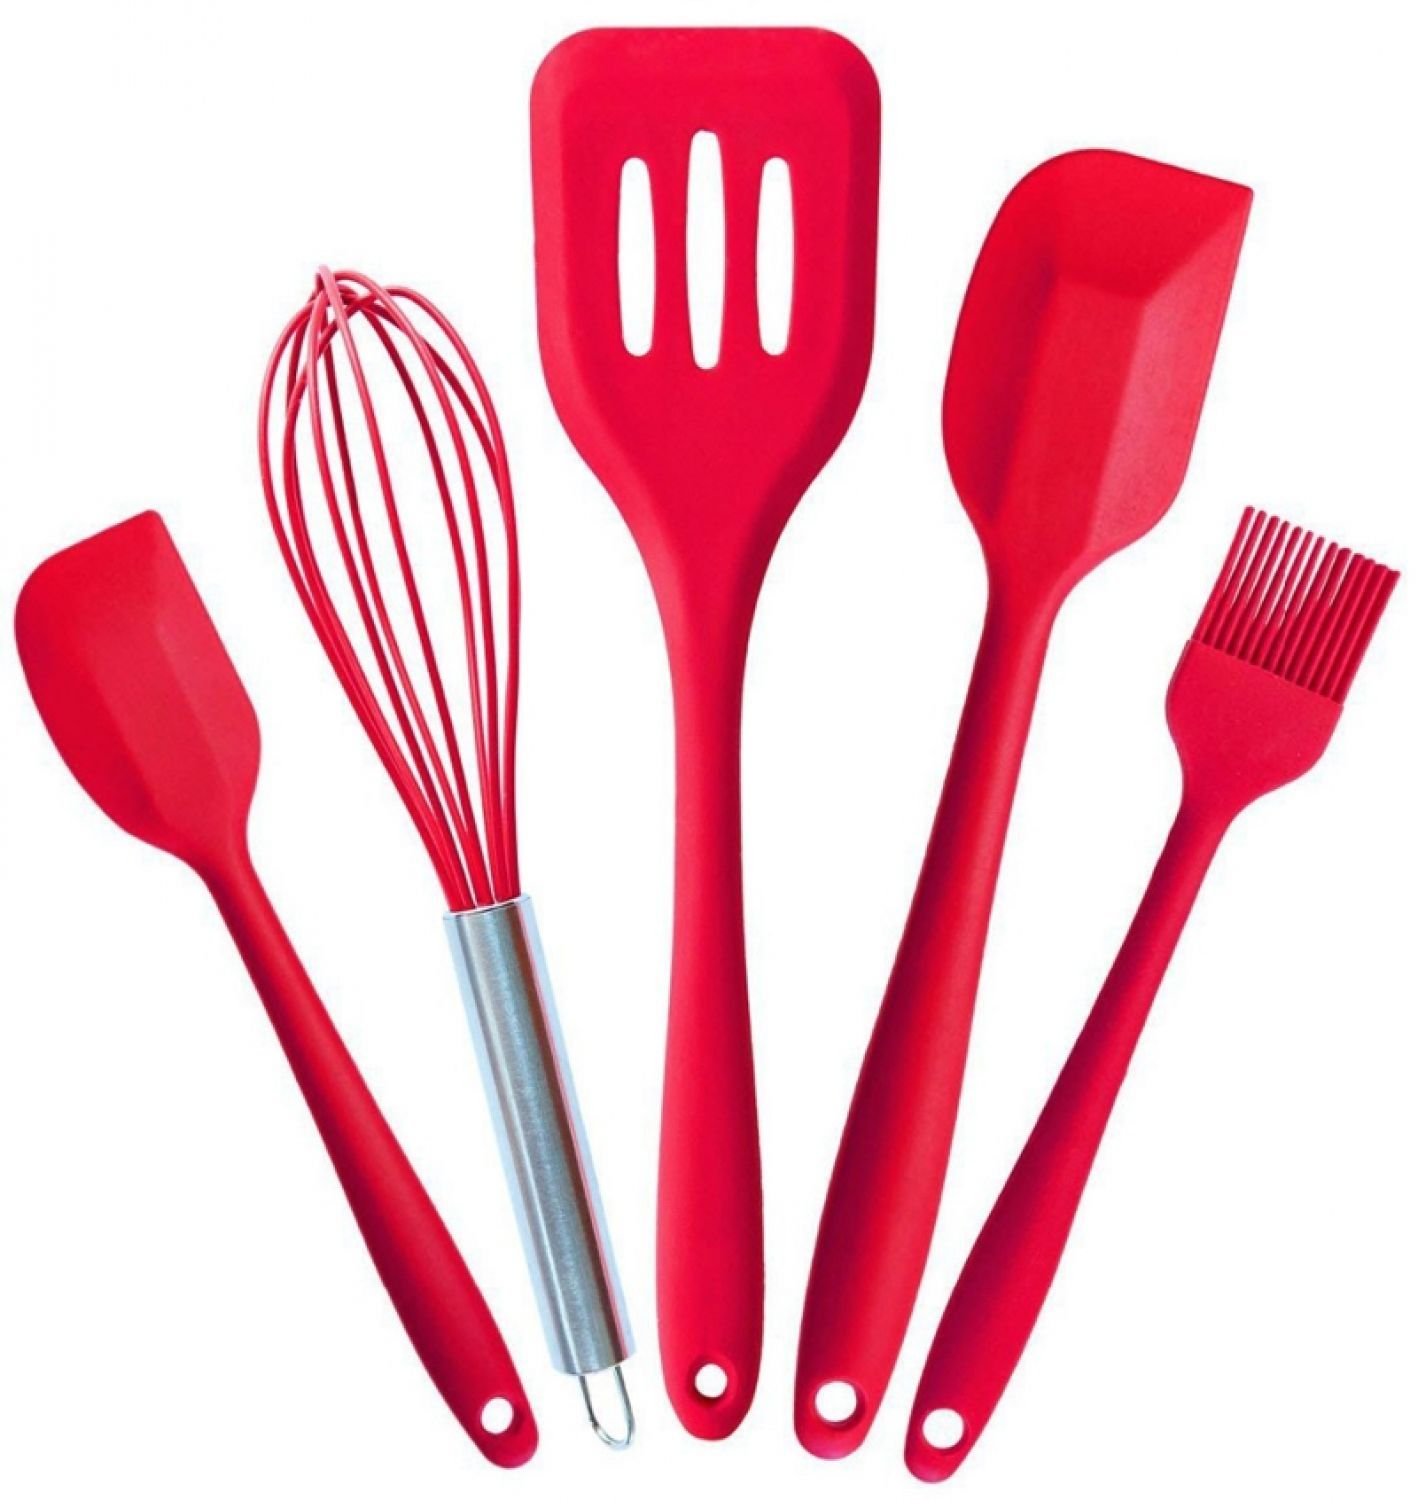 Kitchen Silicone Pastry Cooking Baking Sets Cook Tools Oil Basting Brush Spatula